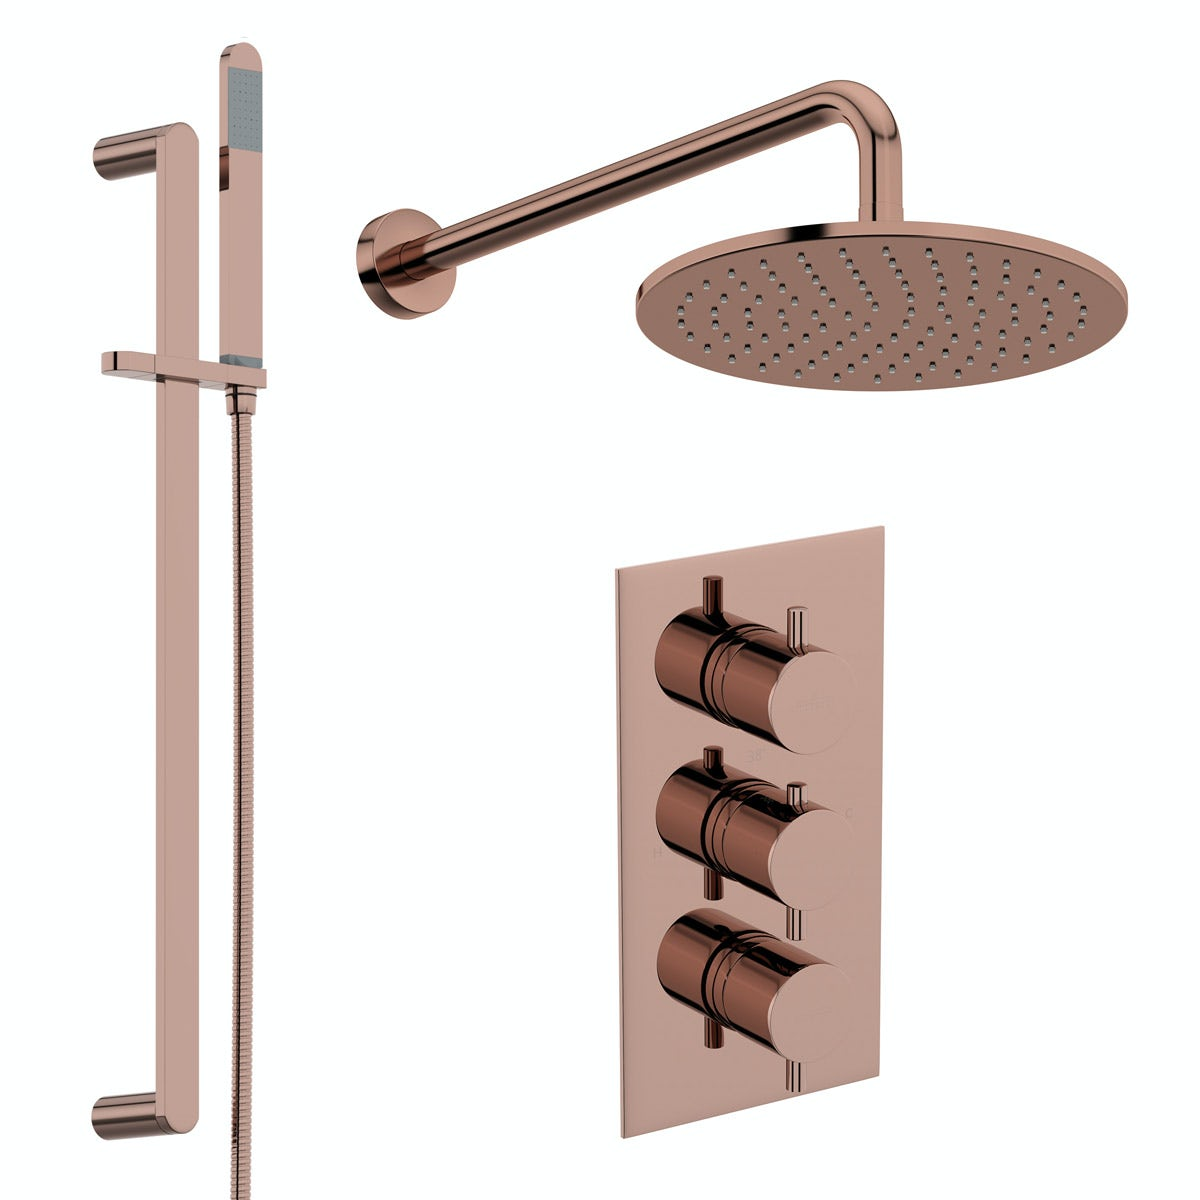 Mode Spencer round rose gold triple valve shower set